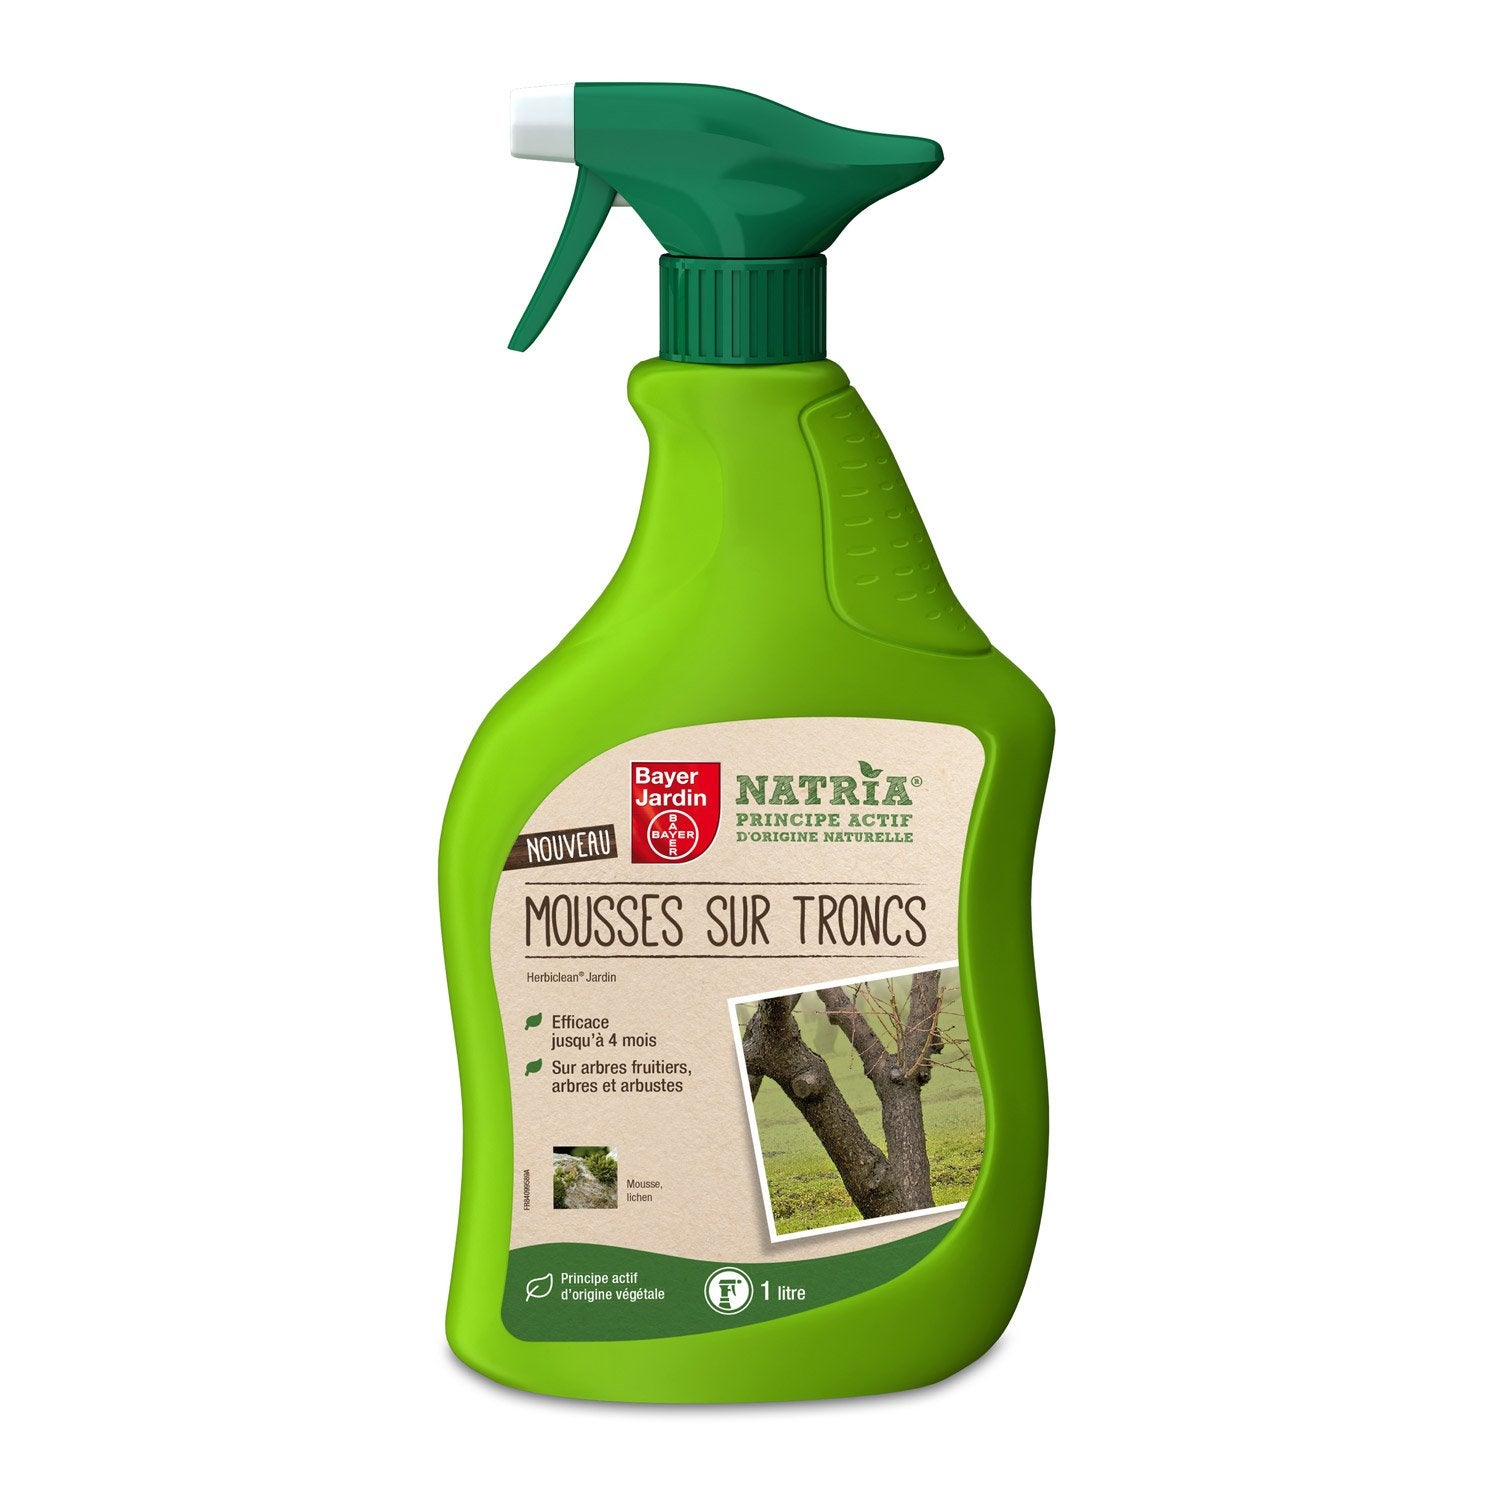 Antimousse polyvalent bayer 1 l leroy merlin for Bayer jardin anti mousse